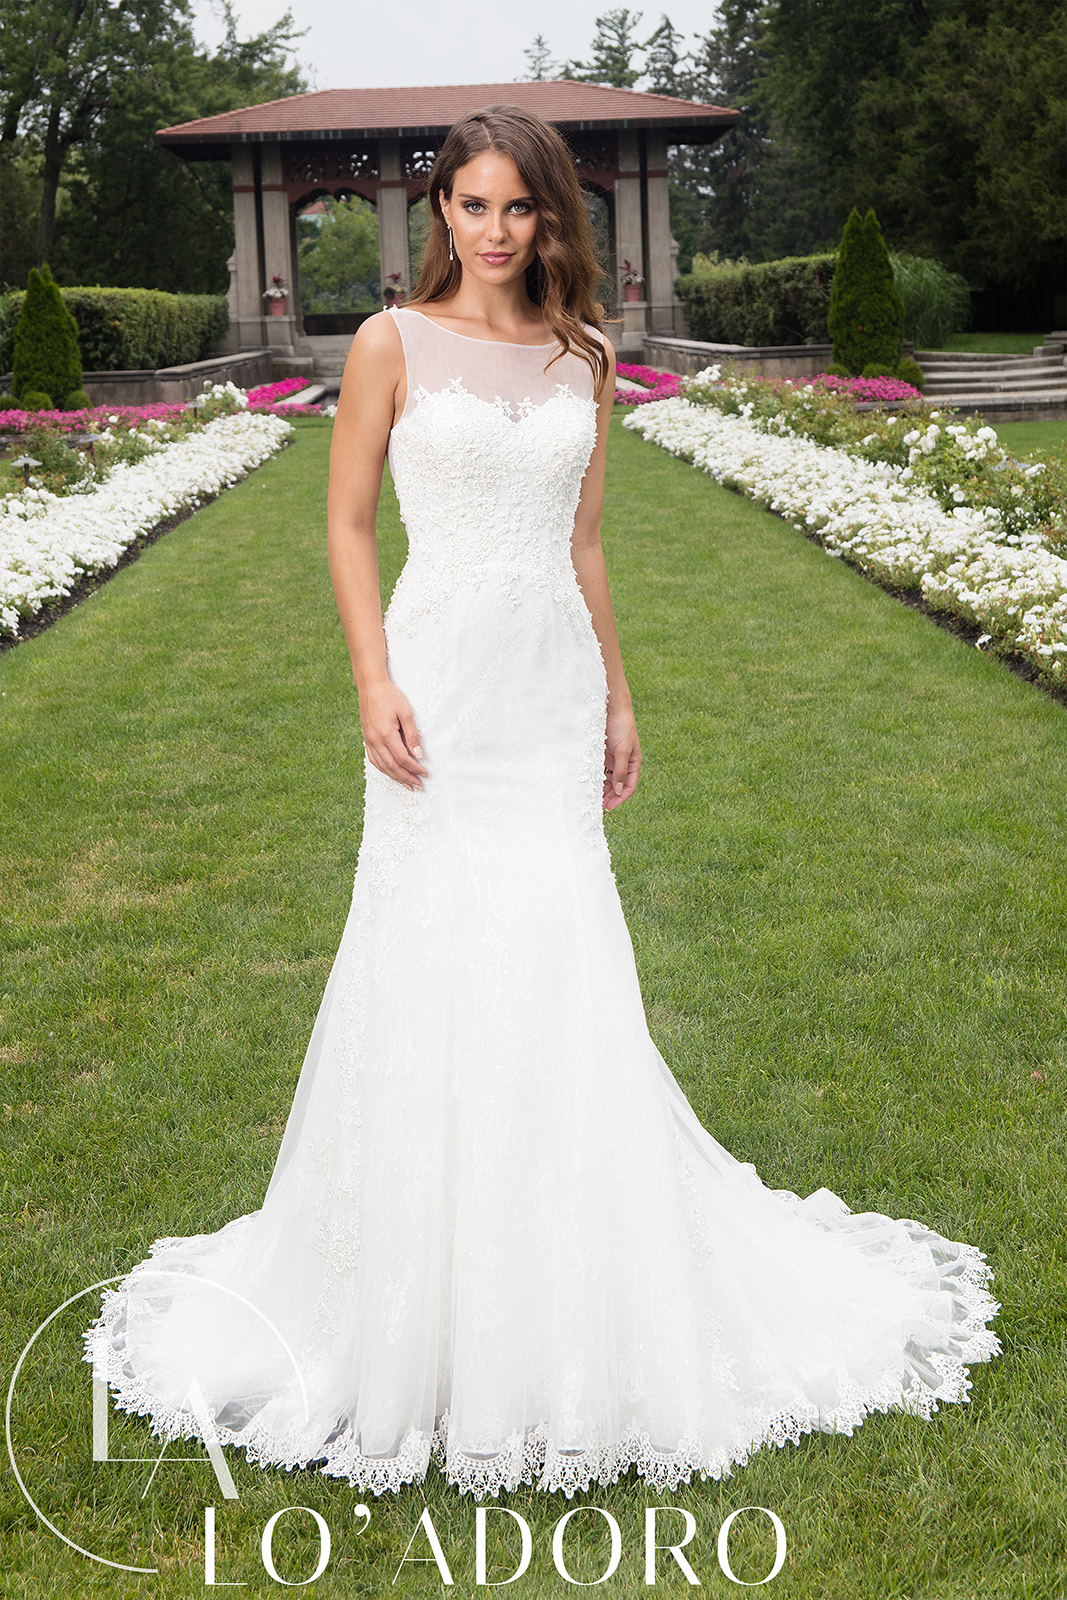 Sheer Fitted Long Lo' Adoro Bridal in White Color